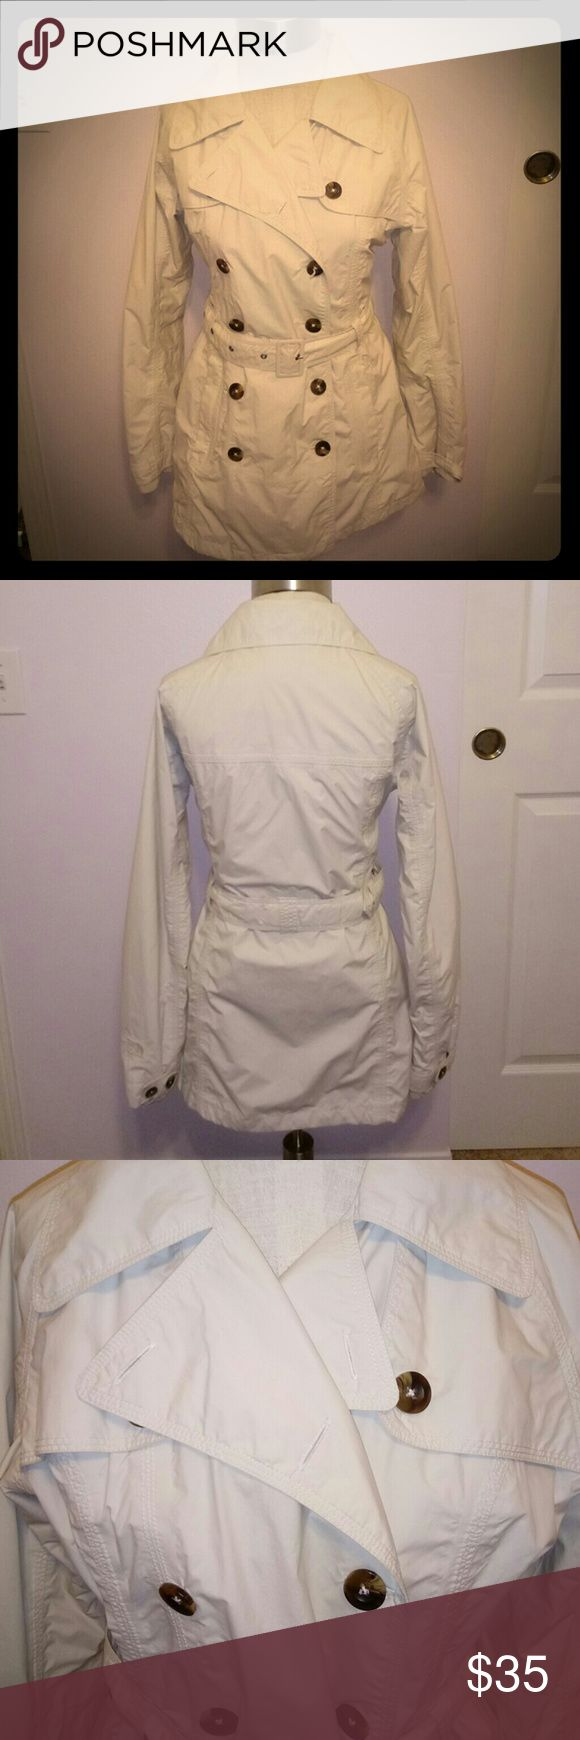 THE NORTH FACE Belted Women's Rain Jacket Color: Cream. Shell: 100% Nylon. Lining: 100% Polyester. No flaws, rips or stains. Belt is adjustable. No missing buttons. Size M. Feel free to ask questions or make an offer. GUC. North Face Jackets & Coats Pea Coats